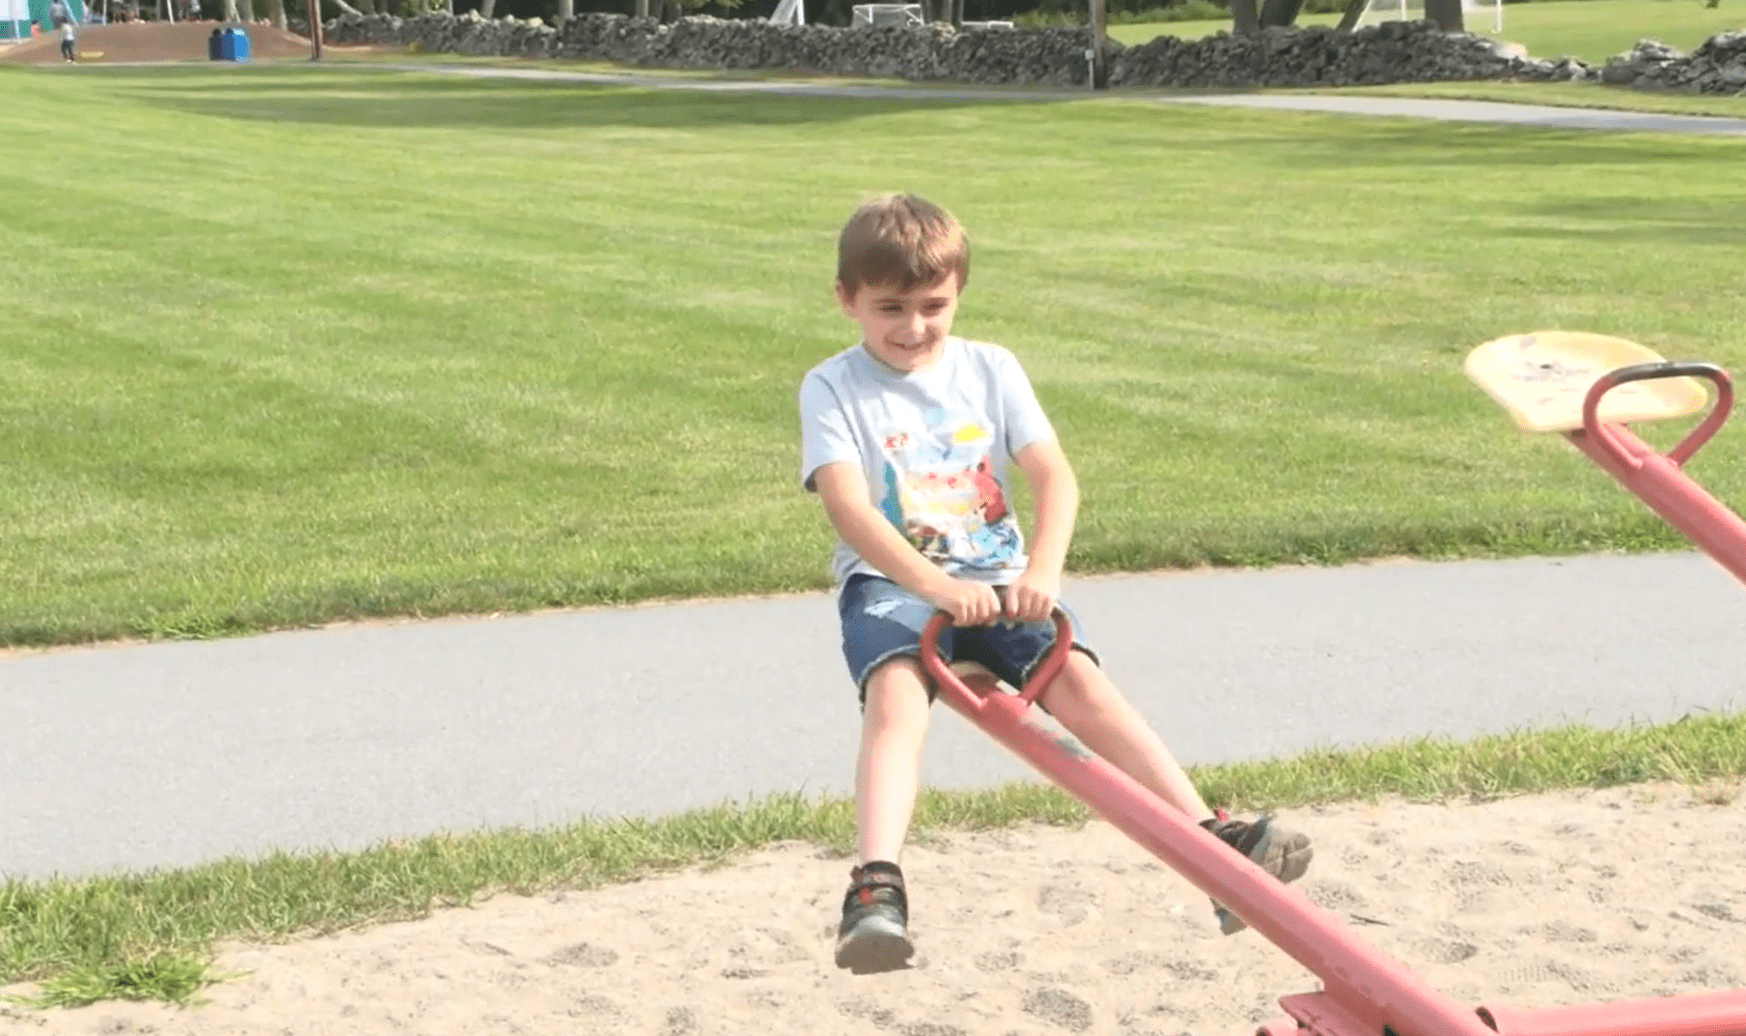 7-year-old Rowyn Montgomery on a seesaw. │Source: ABC News